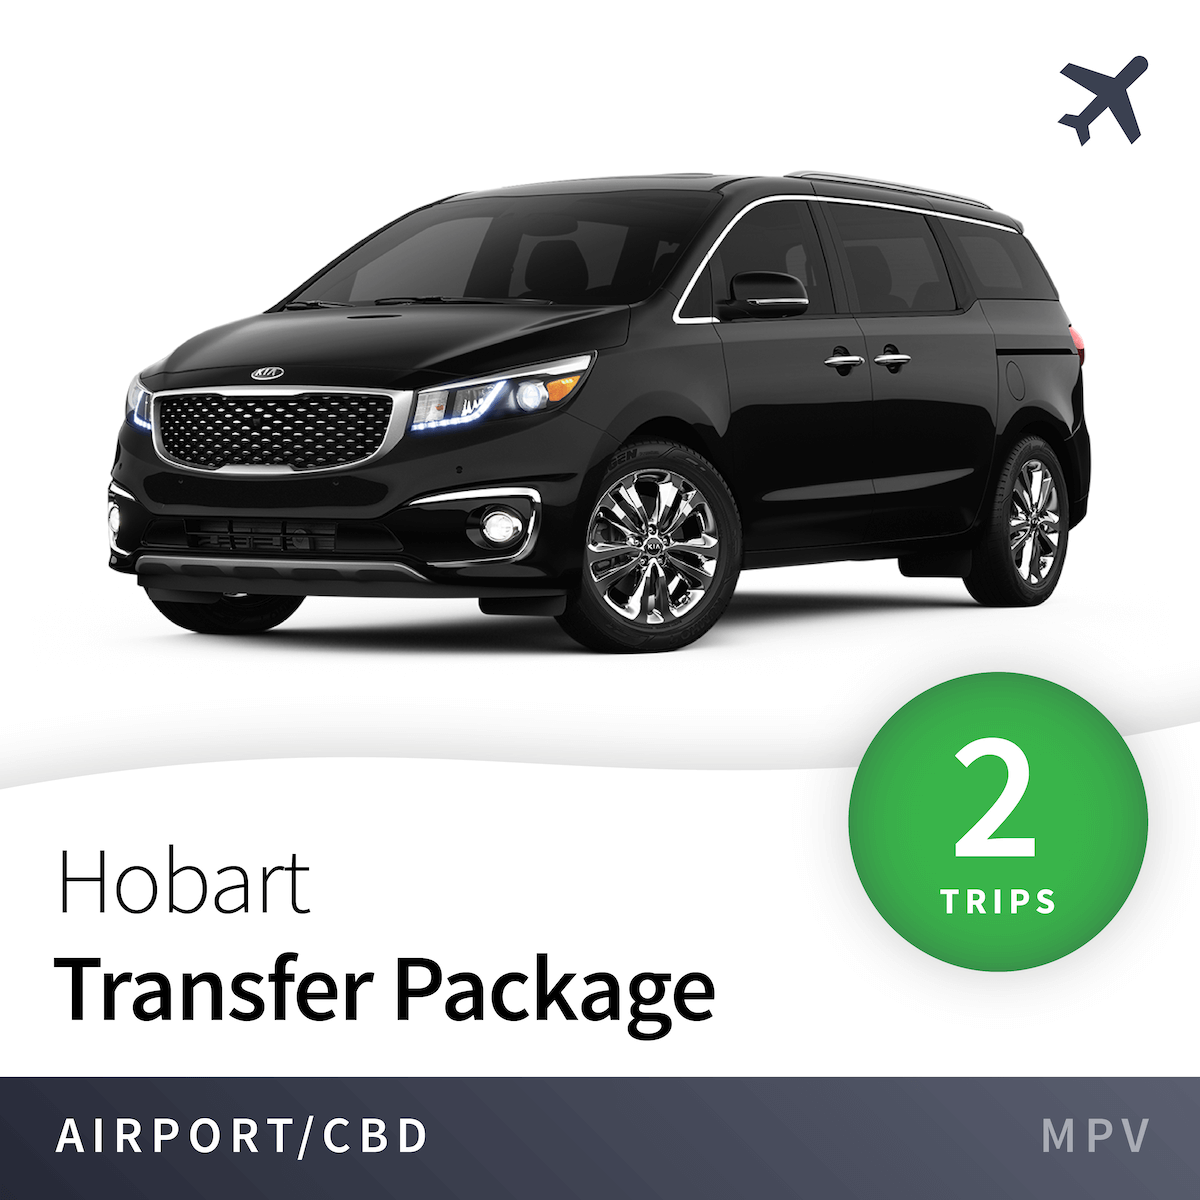 Hobart Airport Transfer Package - MPV (2 Trips) 1